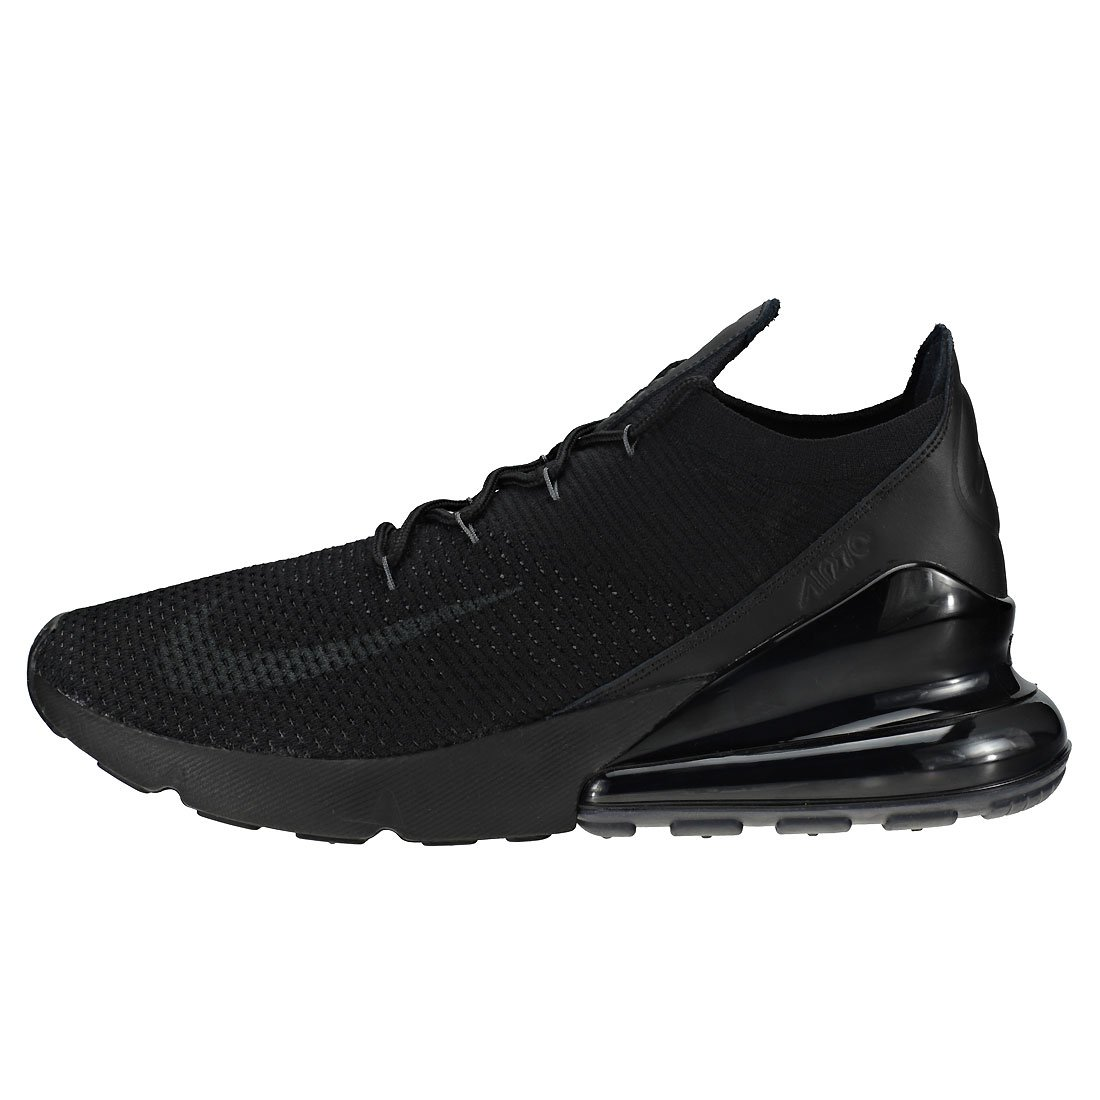 a55d40918ccb Nike Men s Air Max 270 Flyknit Gymnastics Shoes  Amazon.co.uk  Shoes   Bags